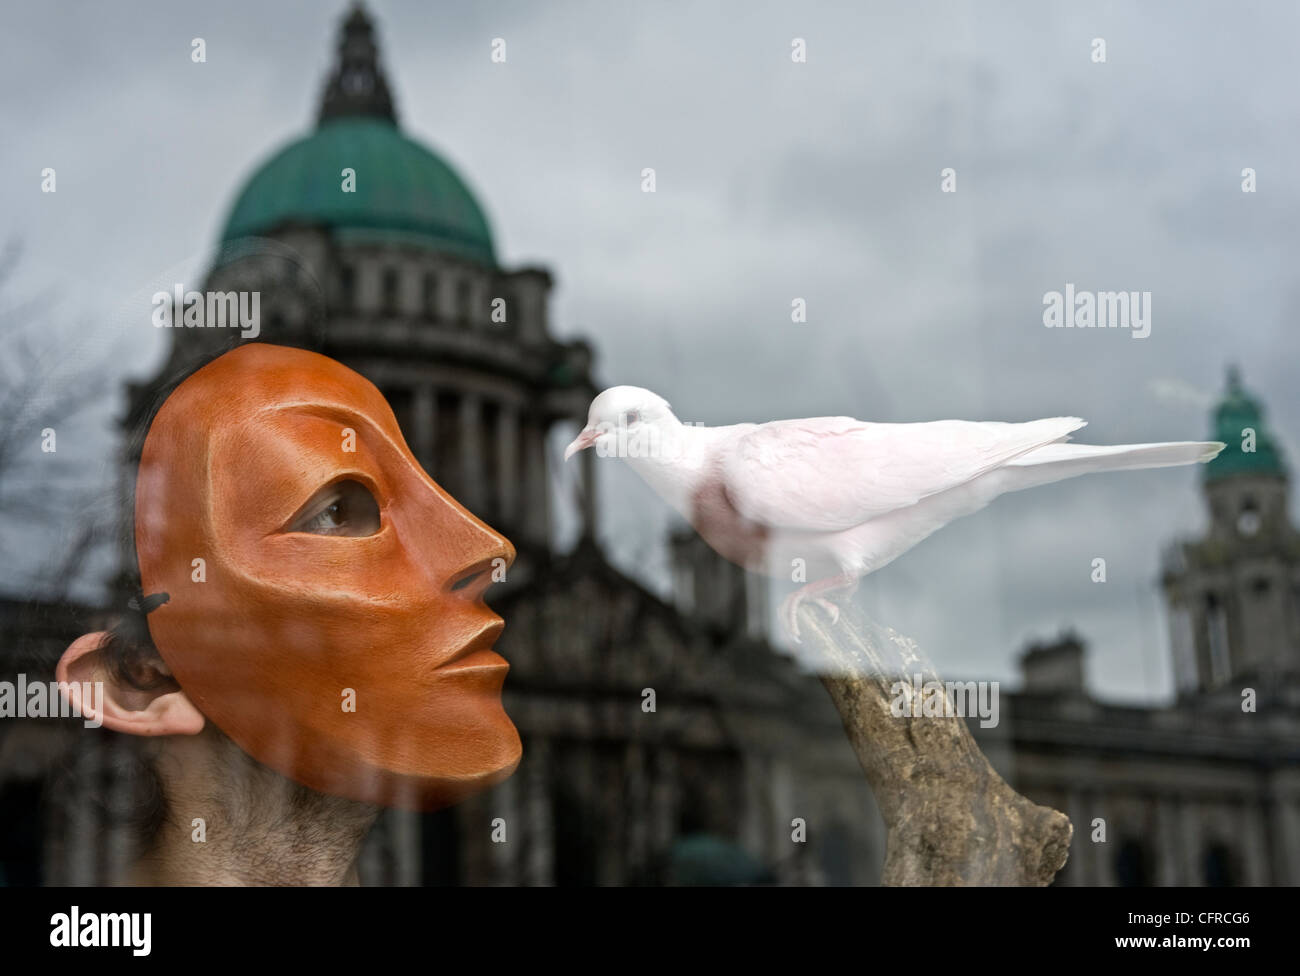 Masked mime artist with dove, City Hall, Belfast. Stock Photo